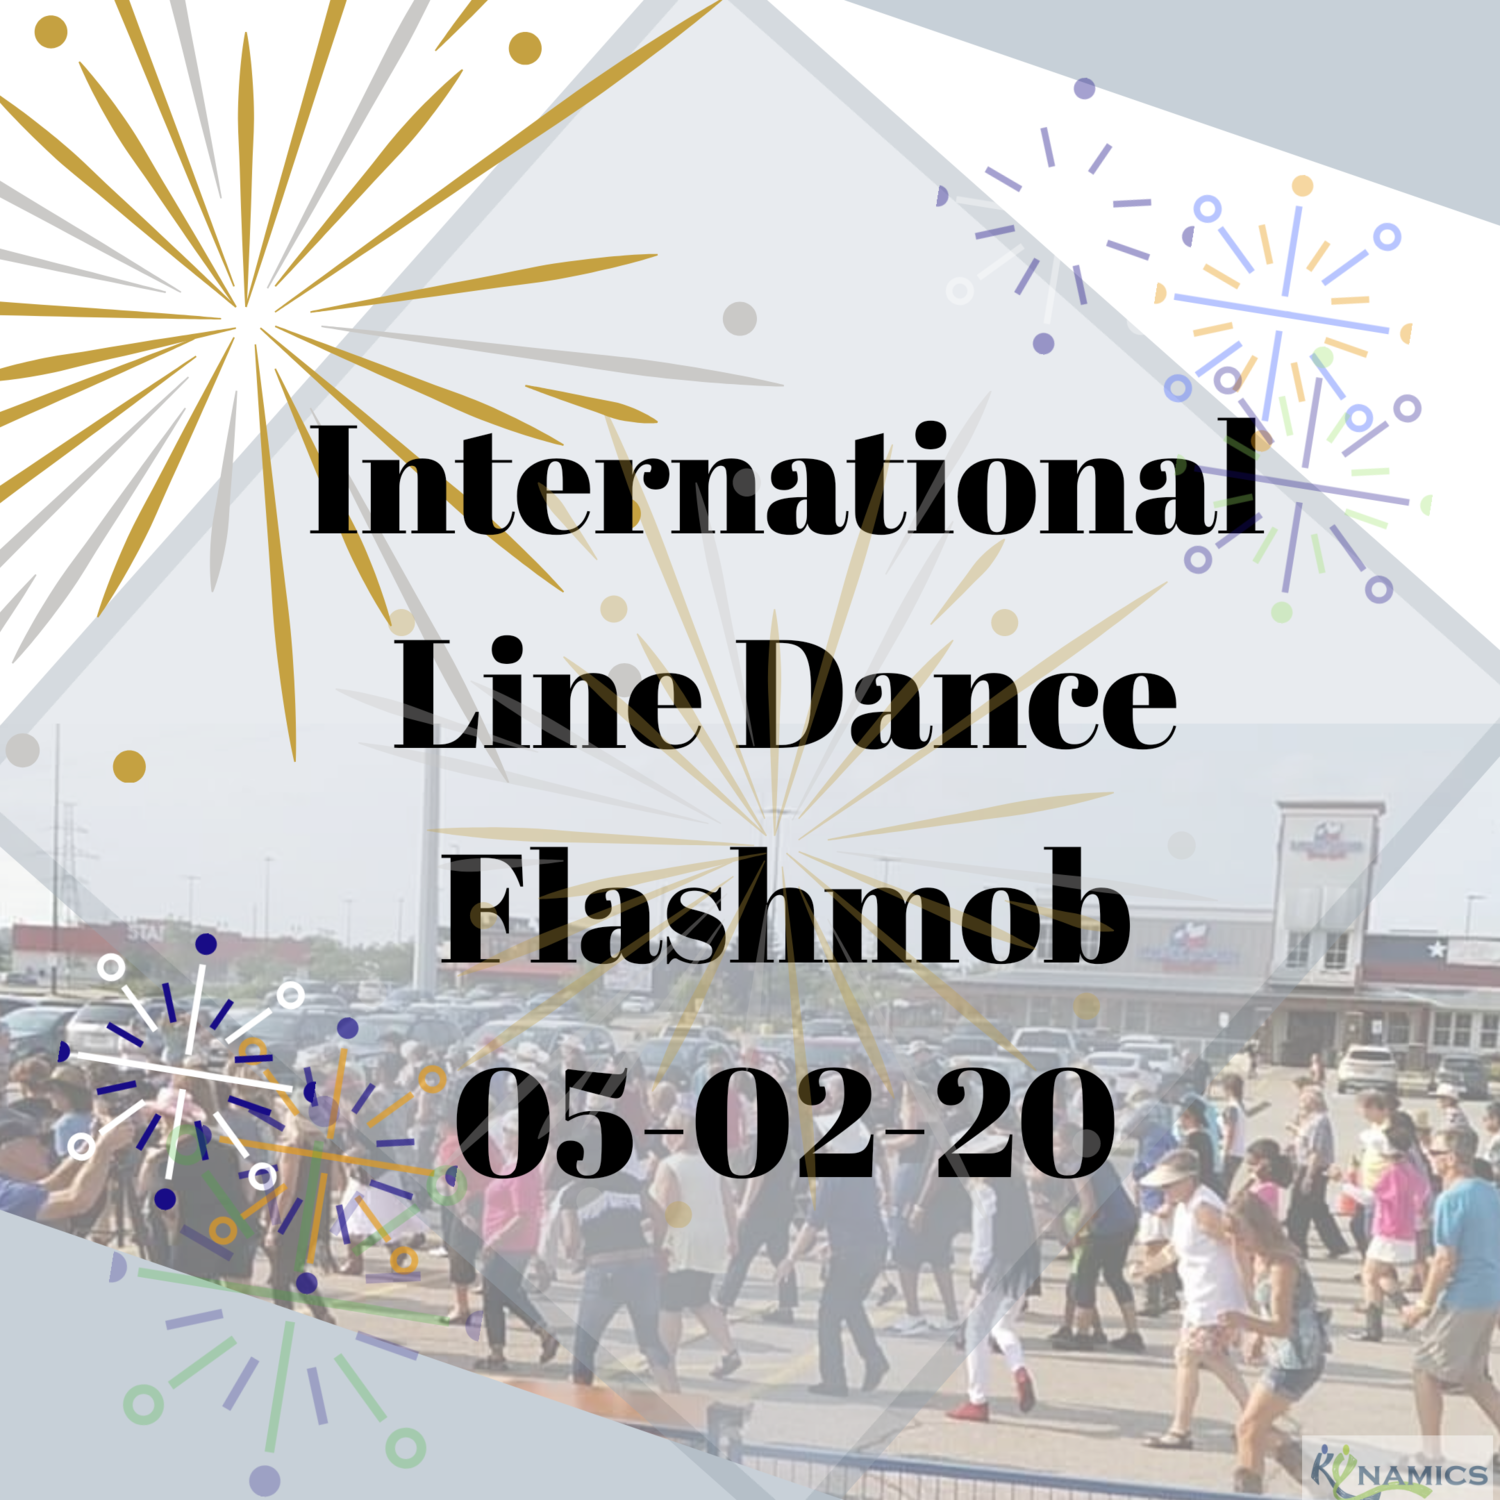 International Line Dance Flashmob